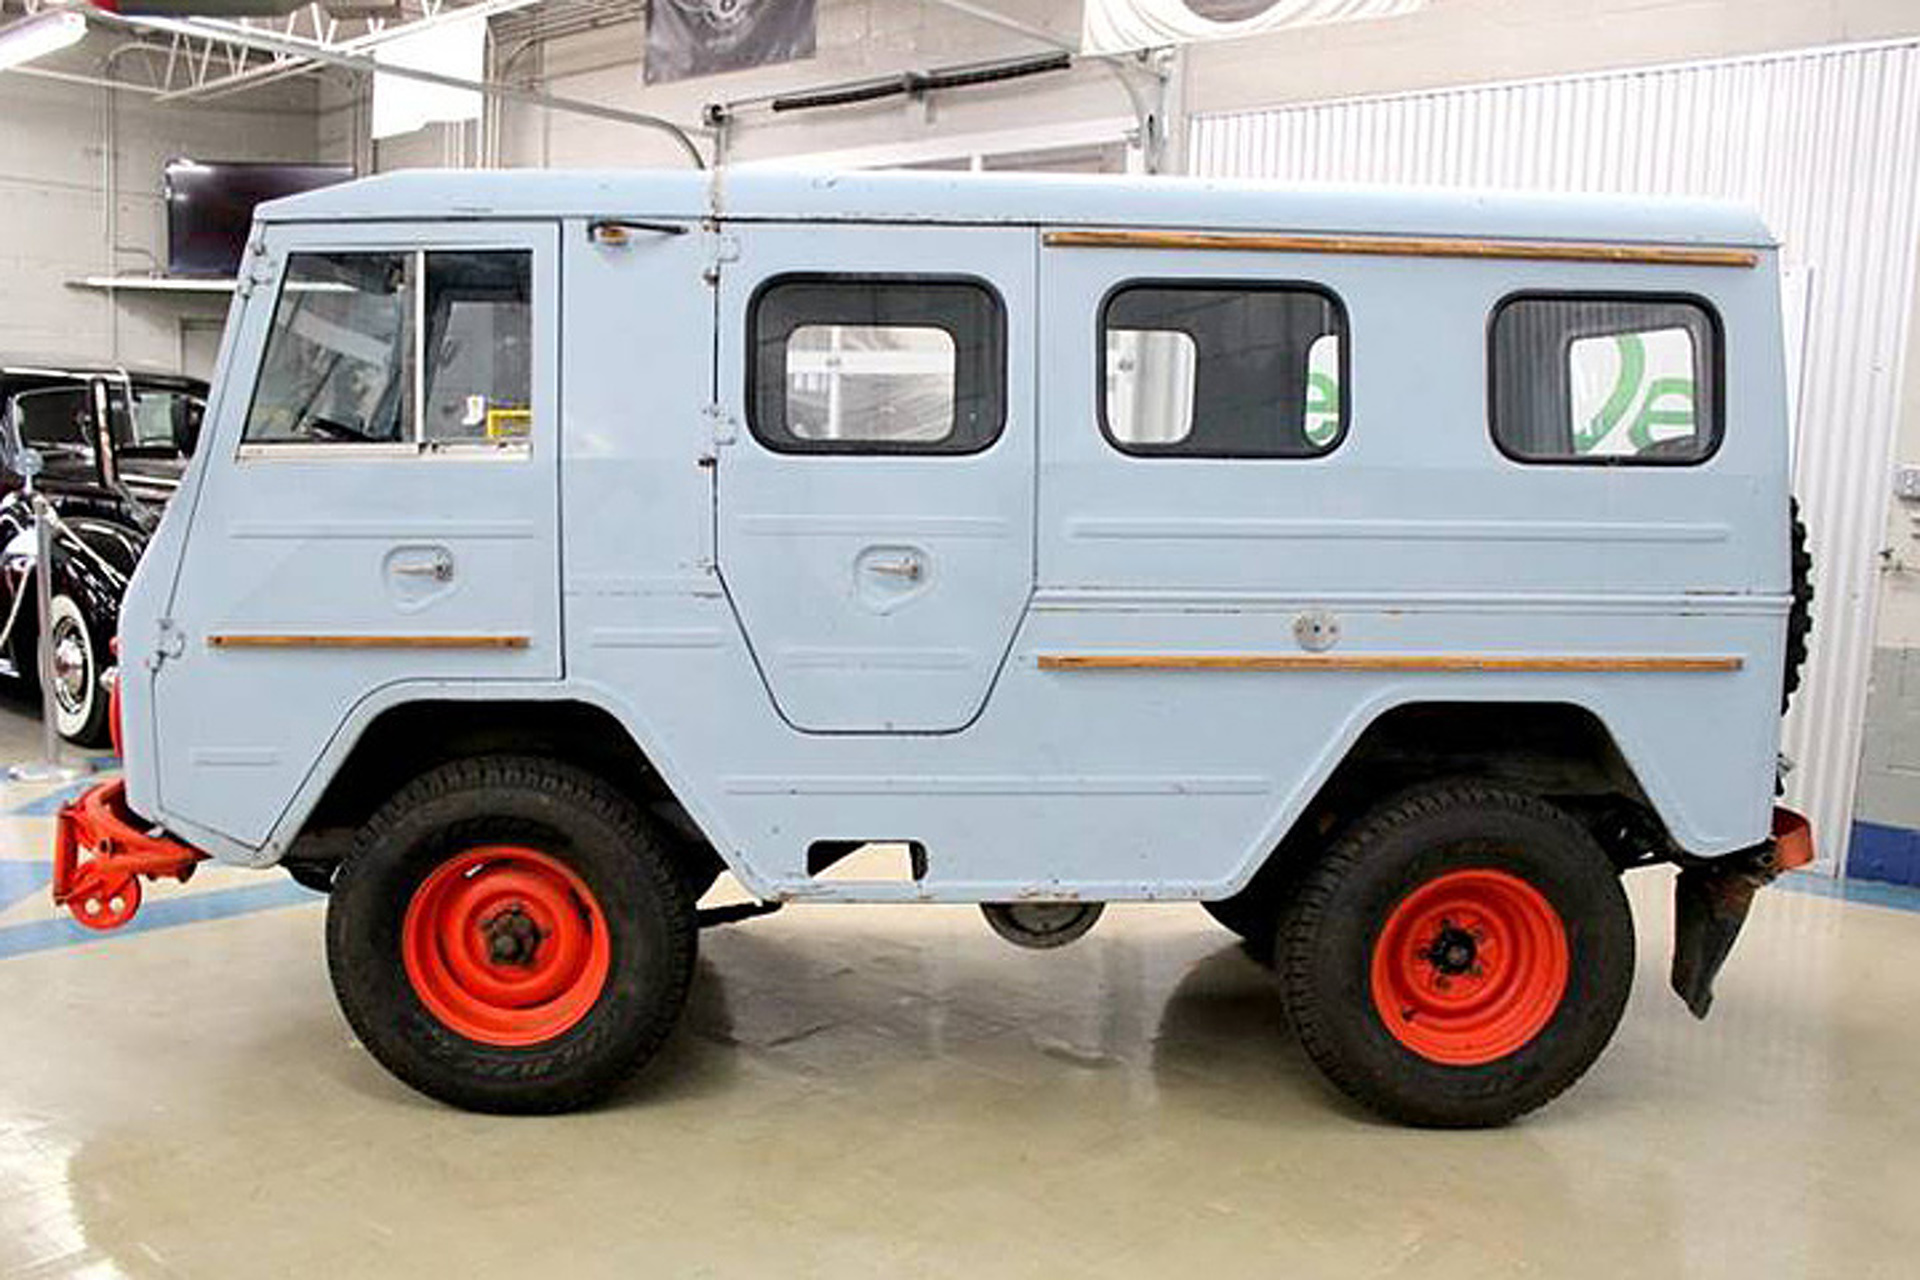 Buy This Vintage Volvo Laplander 4x4, Be the Coolest Person on the Trail